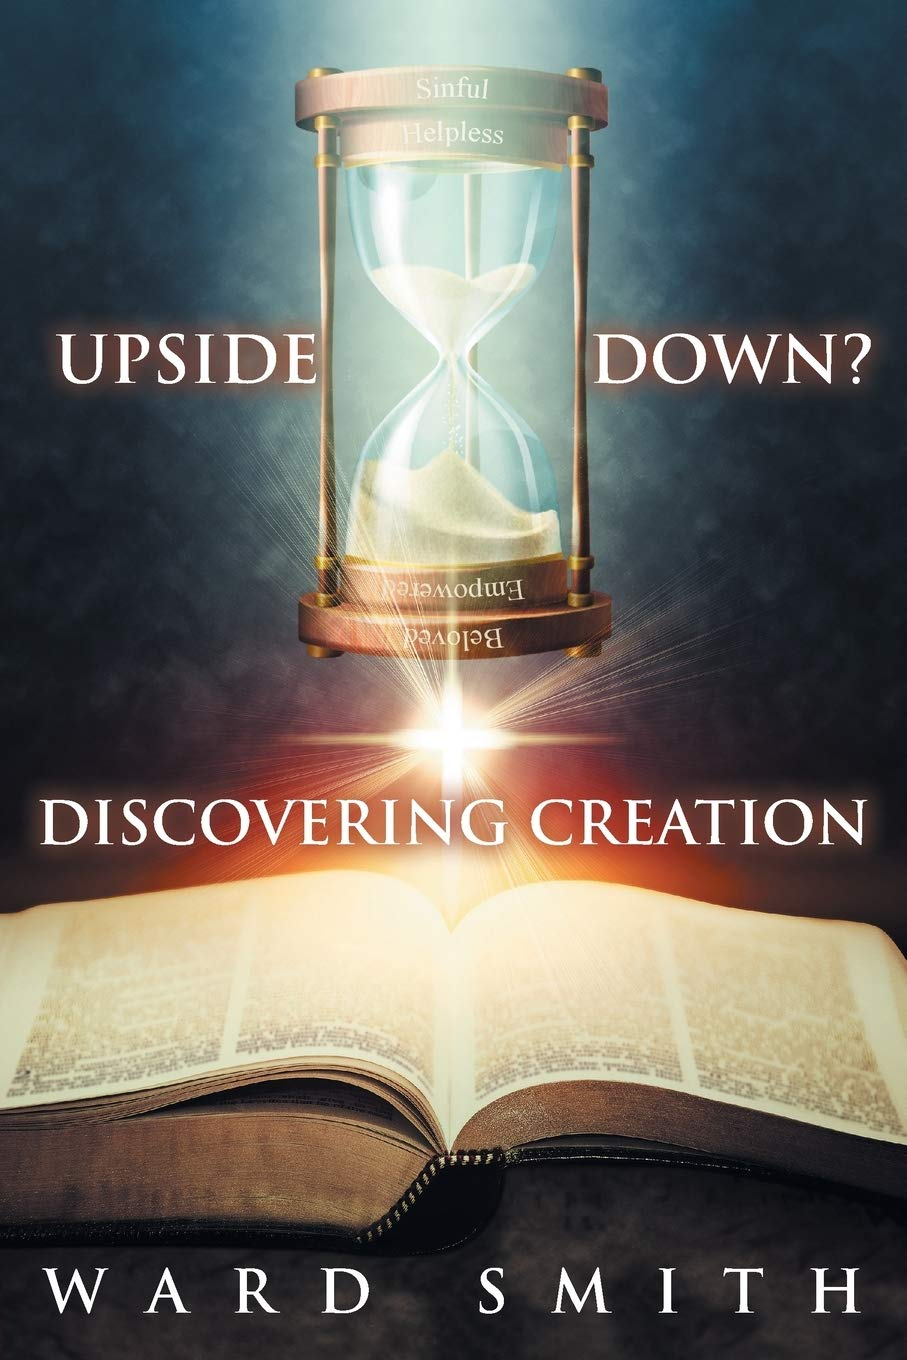 Upside Down Discovering Creation by Ward Smith Now on Amazon